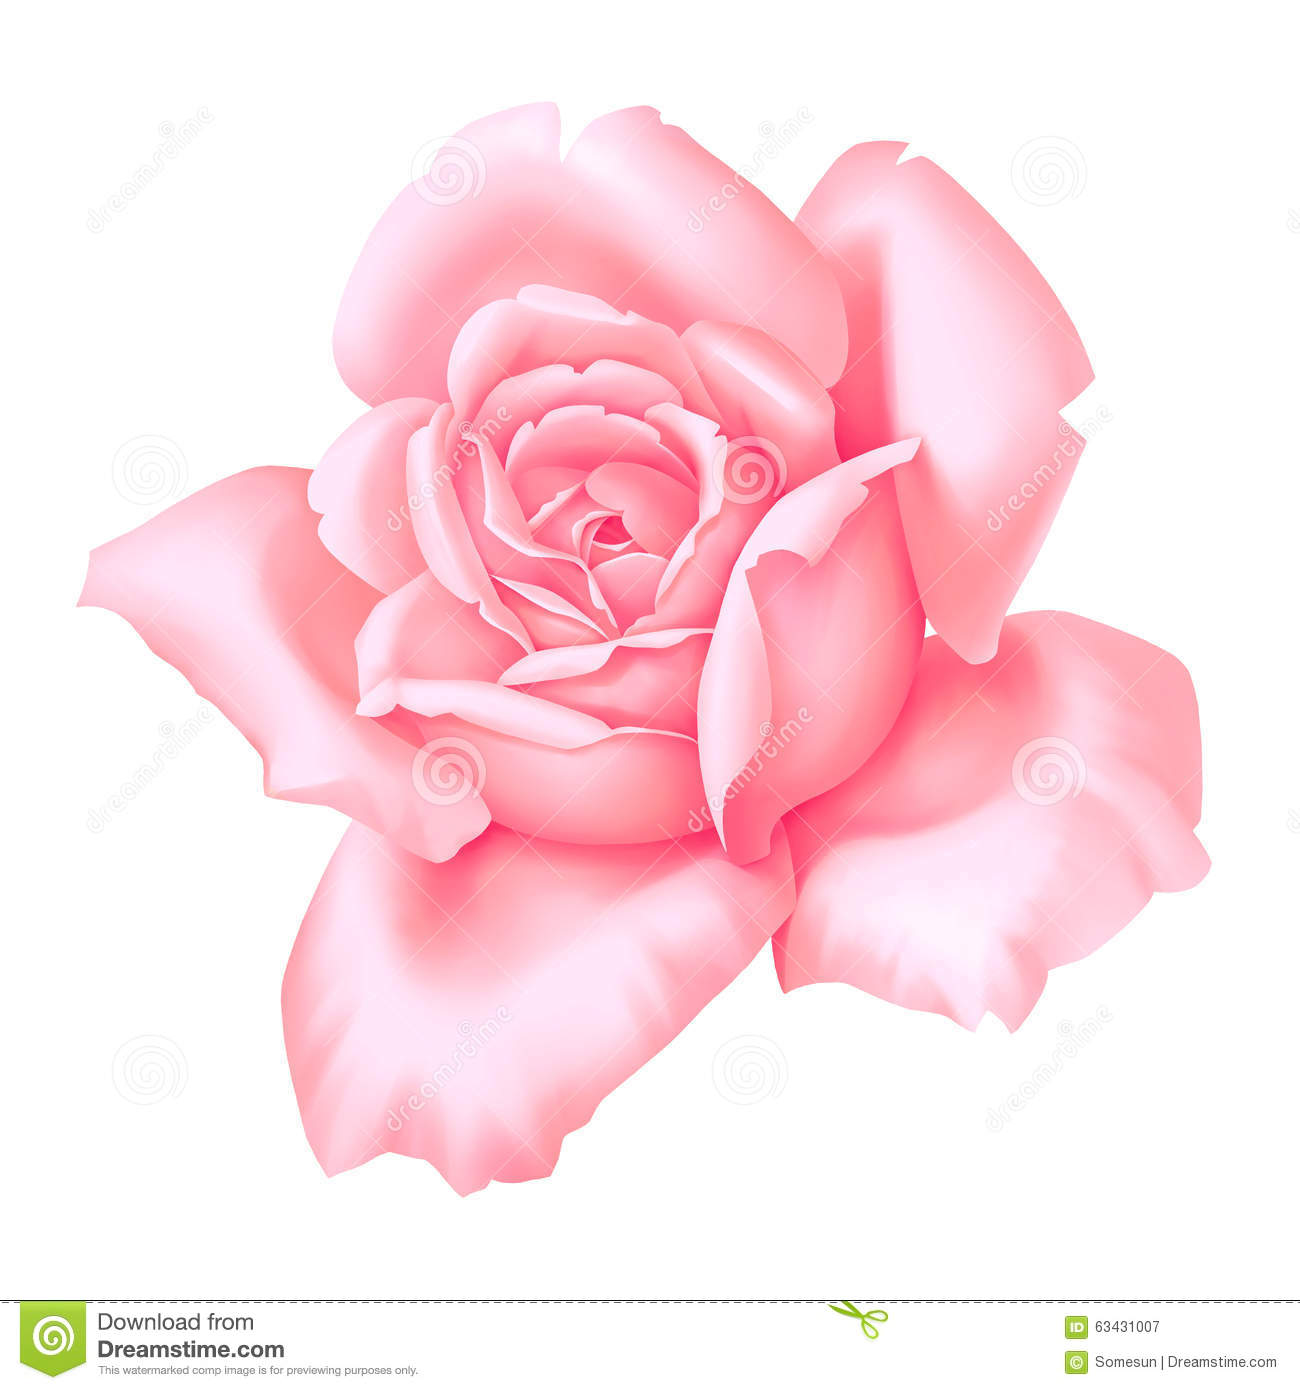 Rose Pink Flower Decorative Vintage Illustration Isolated On White